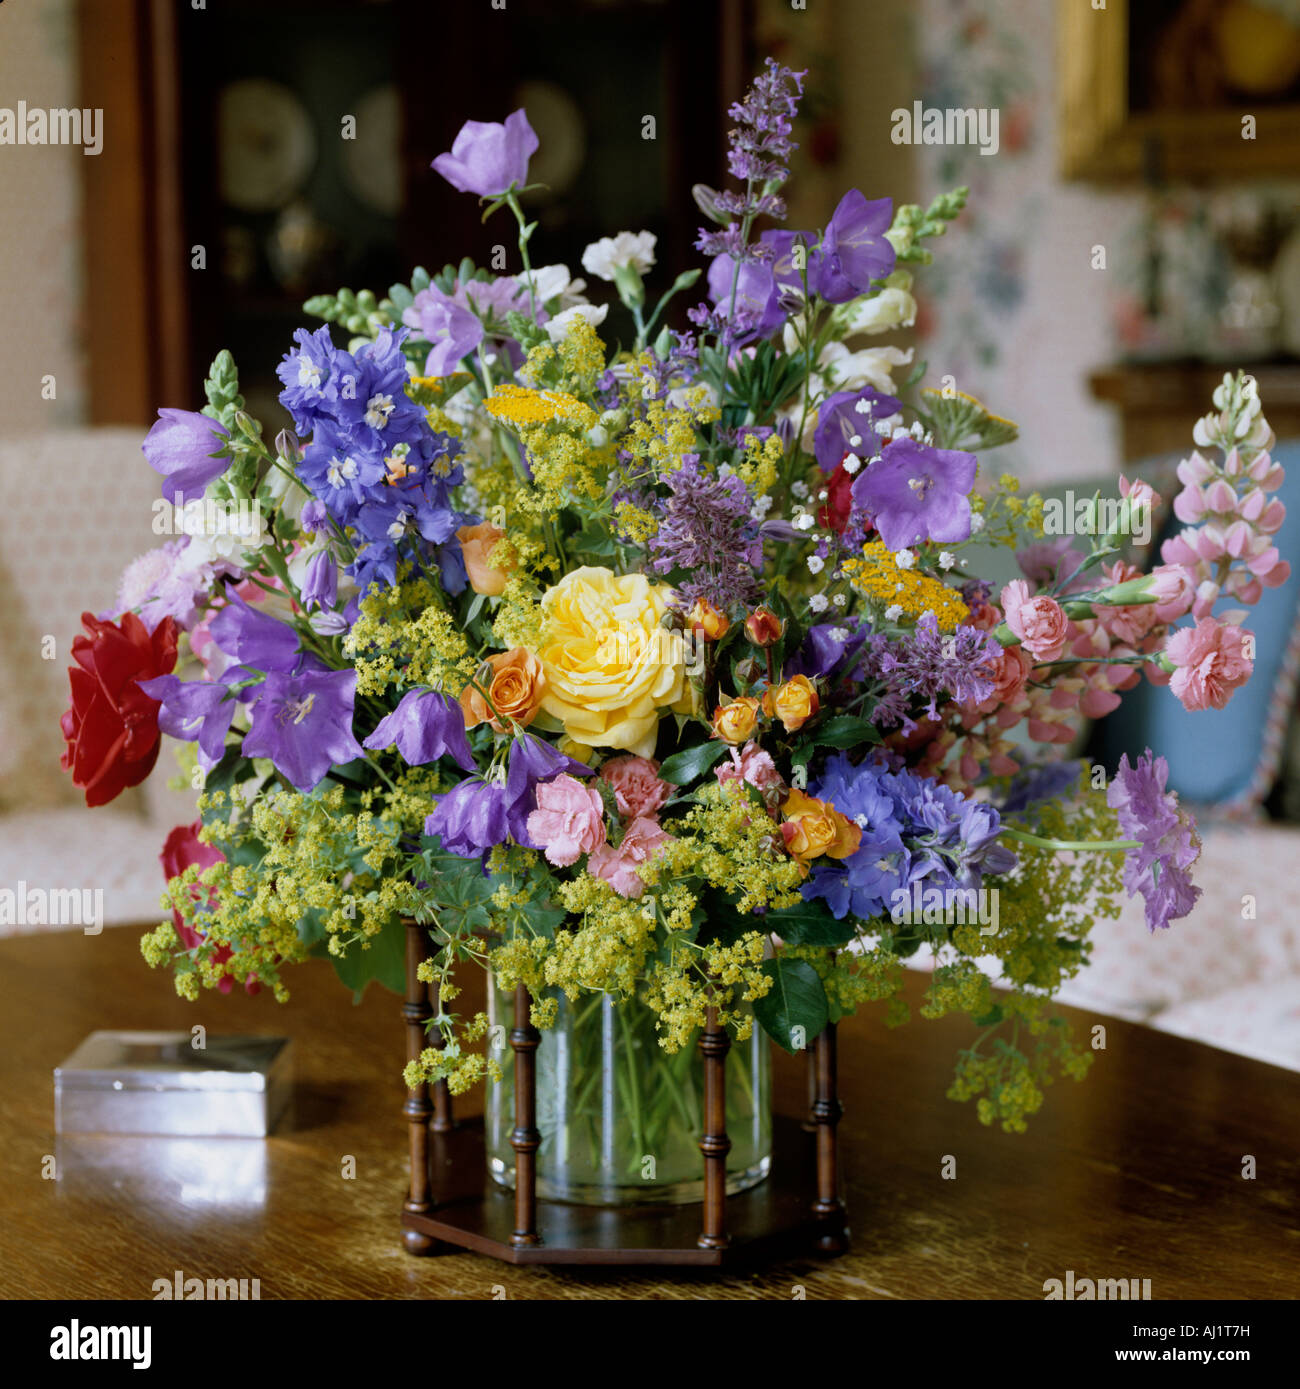 Assorted flower arrangement in glass vase with wooden frame. Stock Photo